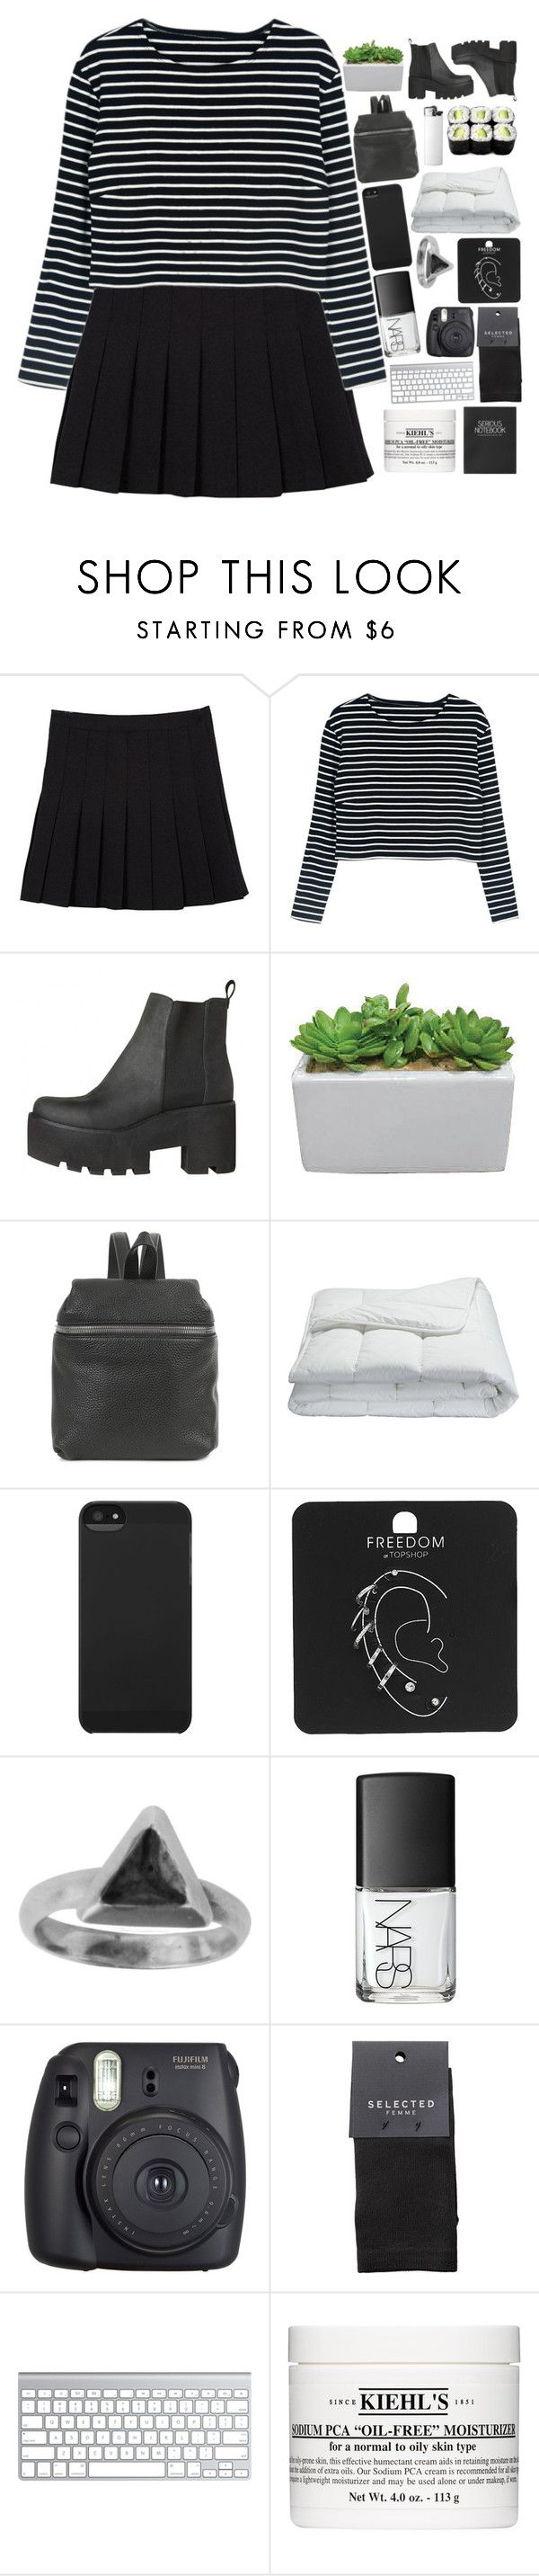 """THE KIDS CRIED OUT PLEASE STOPD YOURE SCARING ME ❤️"" by nothing-like-outerspace ❤ liked on Polyvore featuring Kara, Frette, Incase, Topshop, Zoemou, NARS Cosmetics, Fuji, SELECTED and Kiehl's"